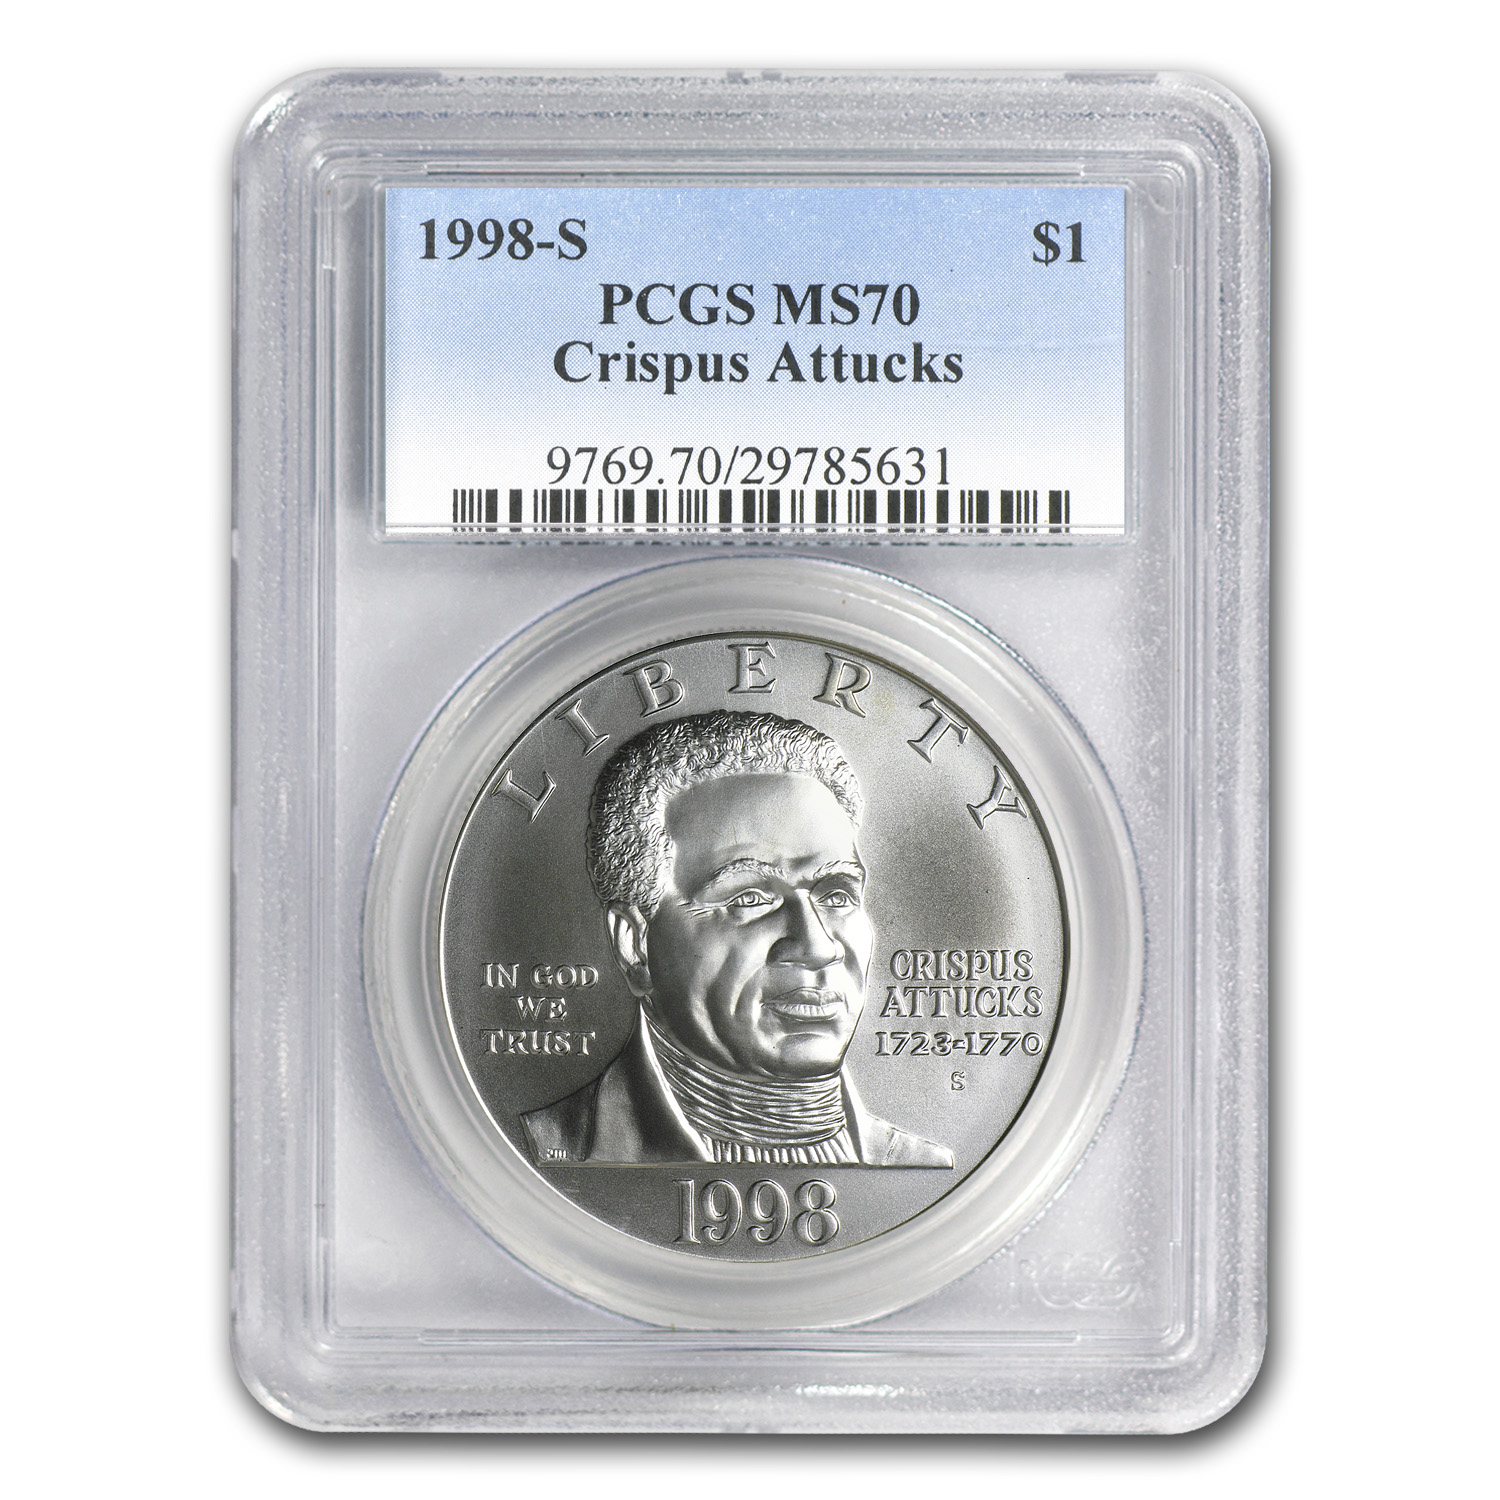 1998-S Black Patriots $1 Silver Commemorative - MS-70 PCGS